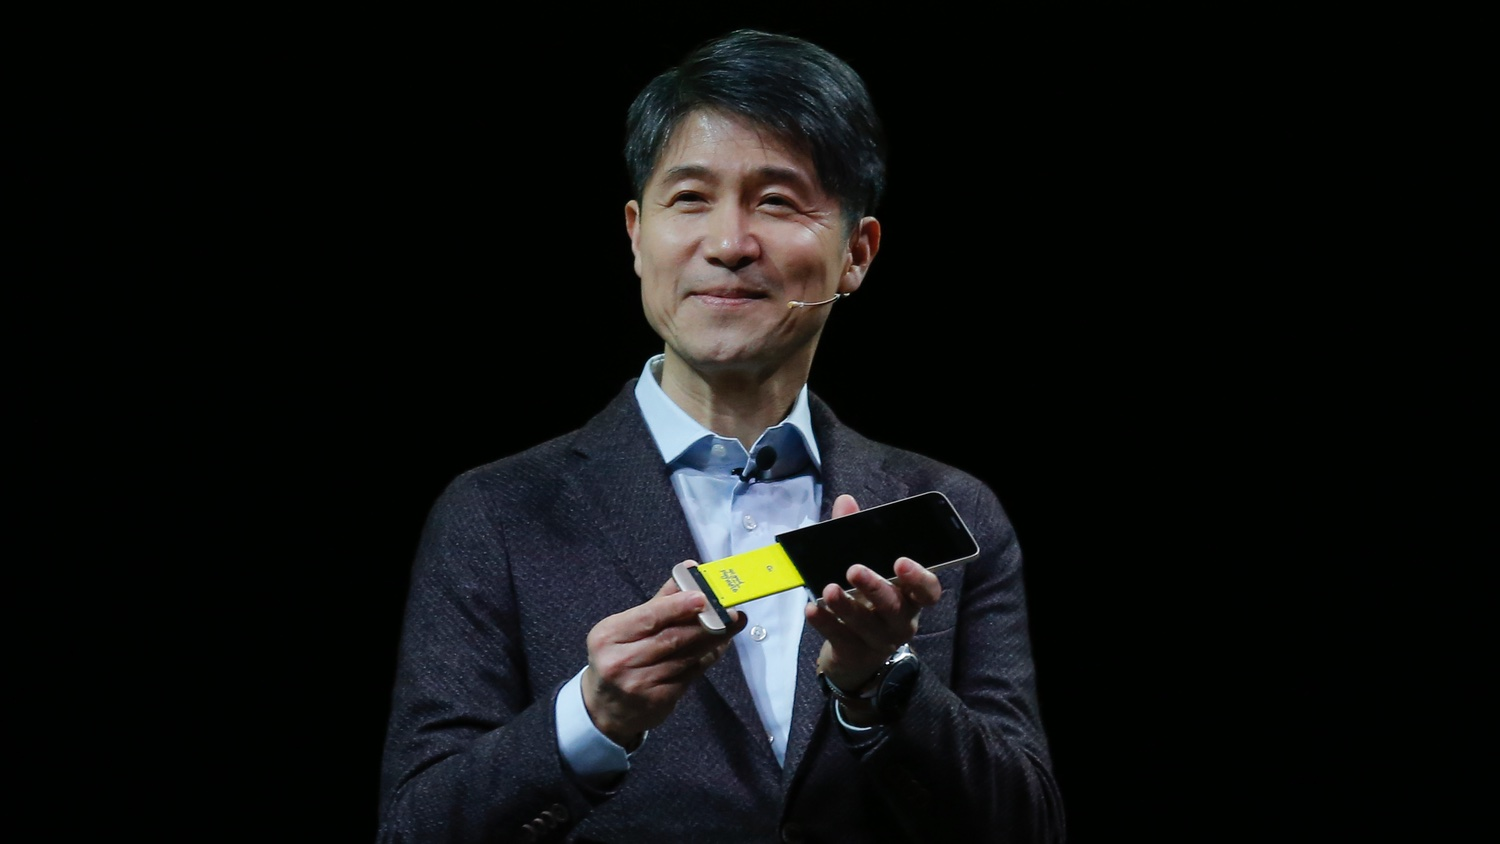 LG CEO shared his thoughts about the iPhone SE